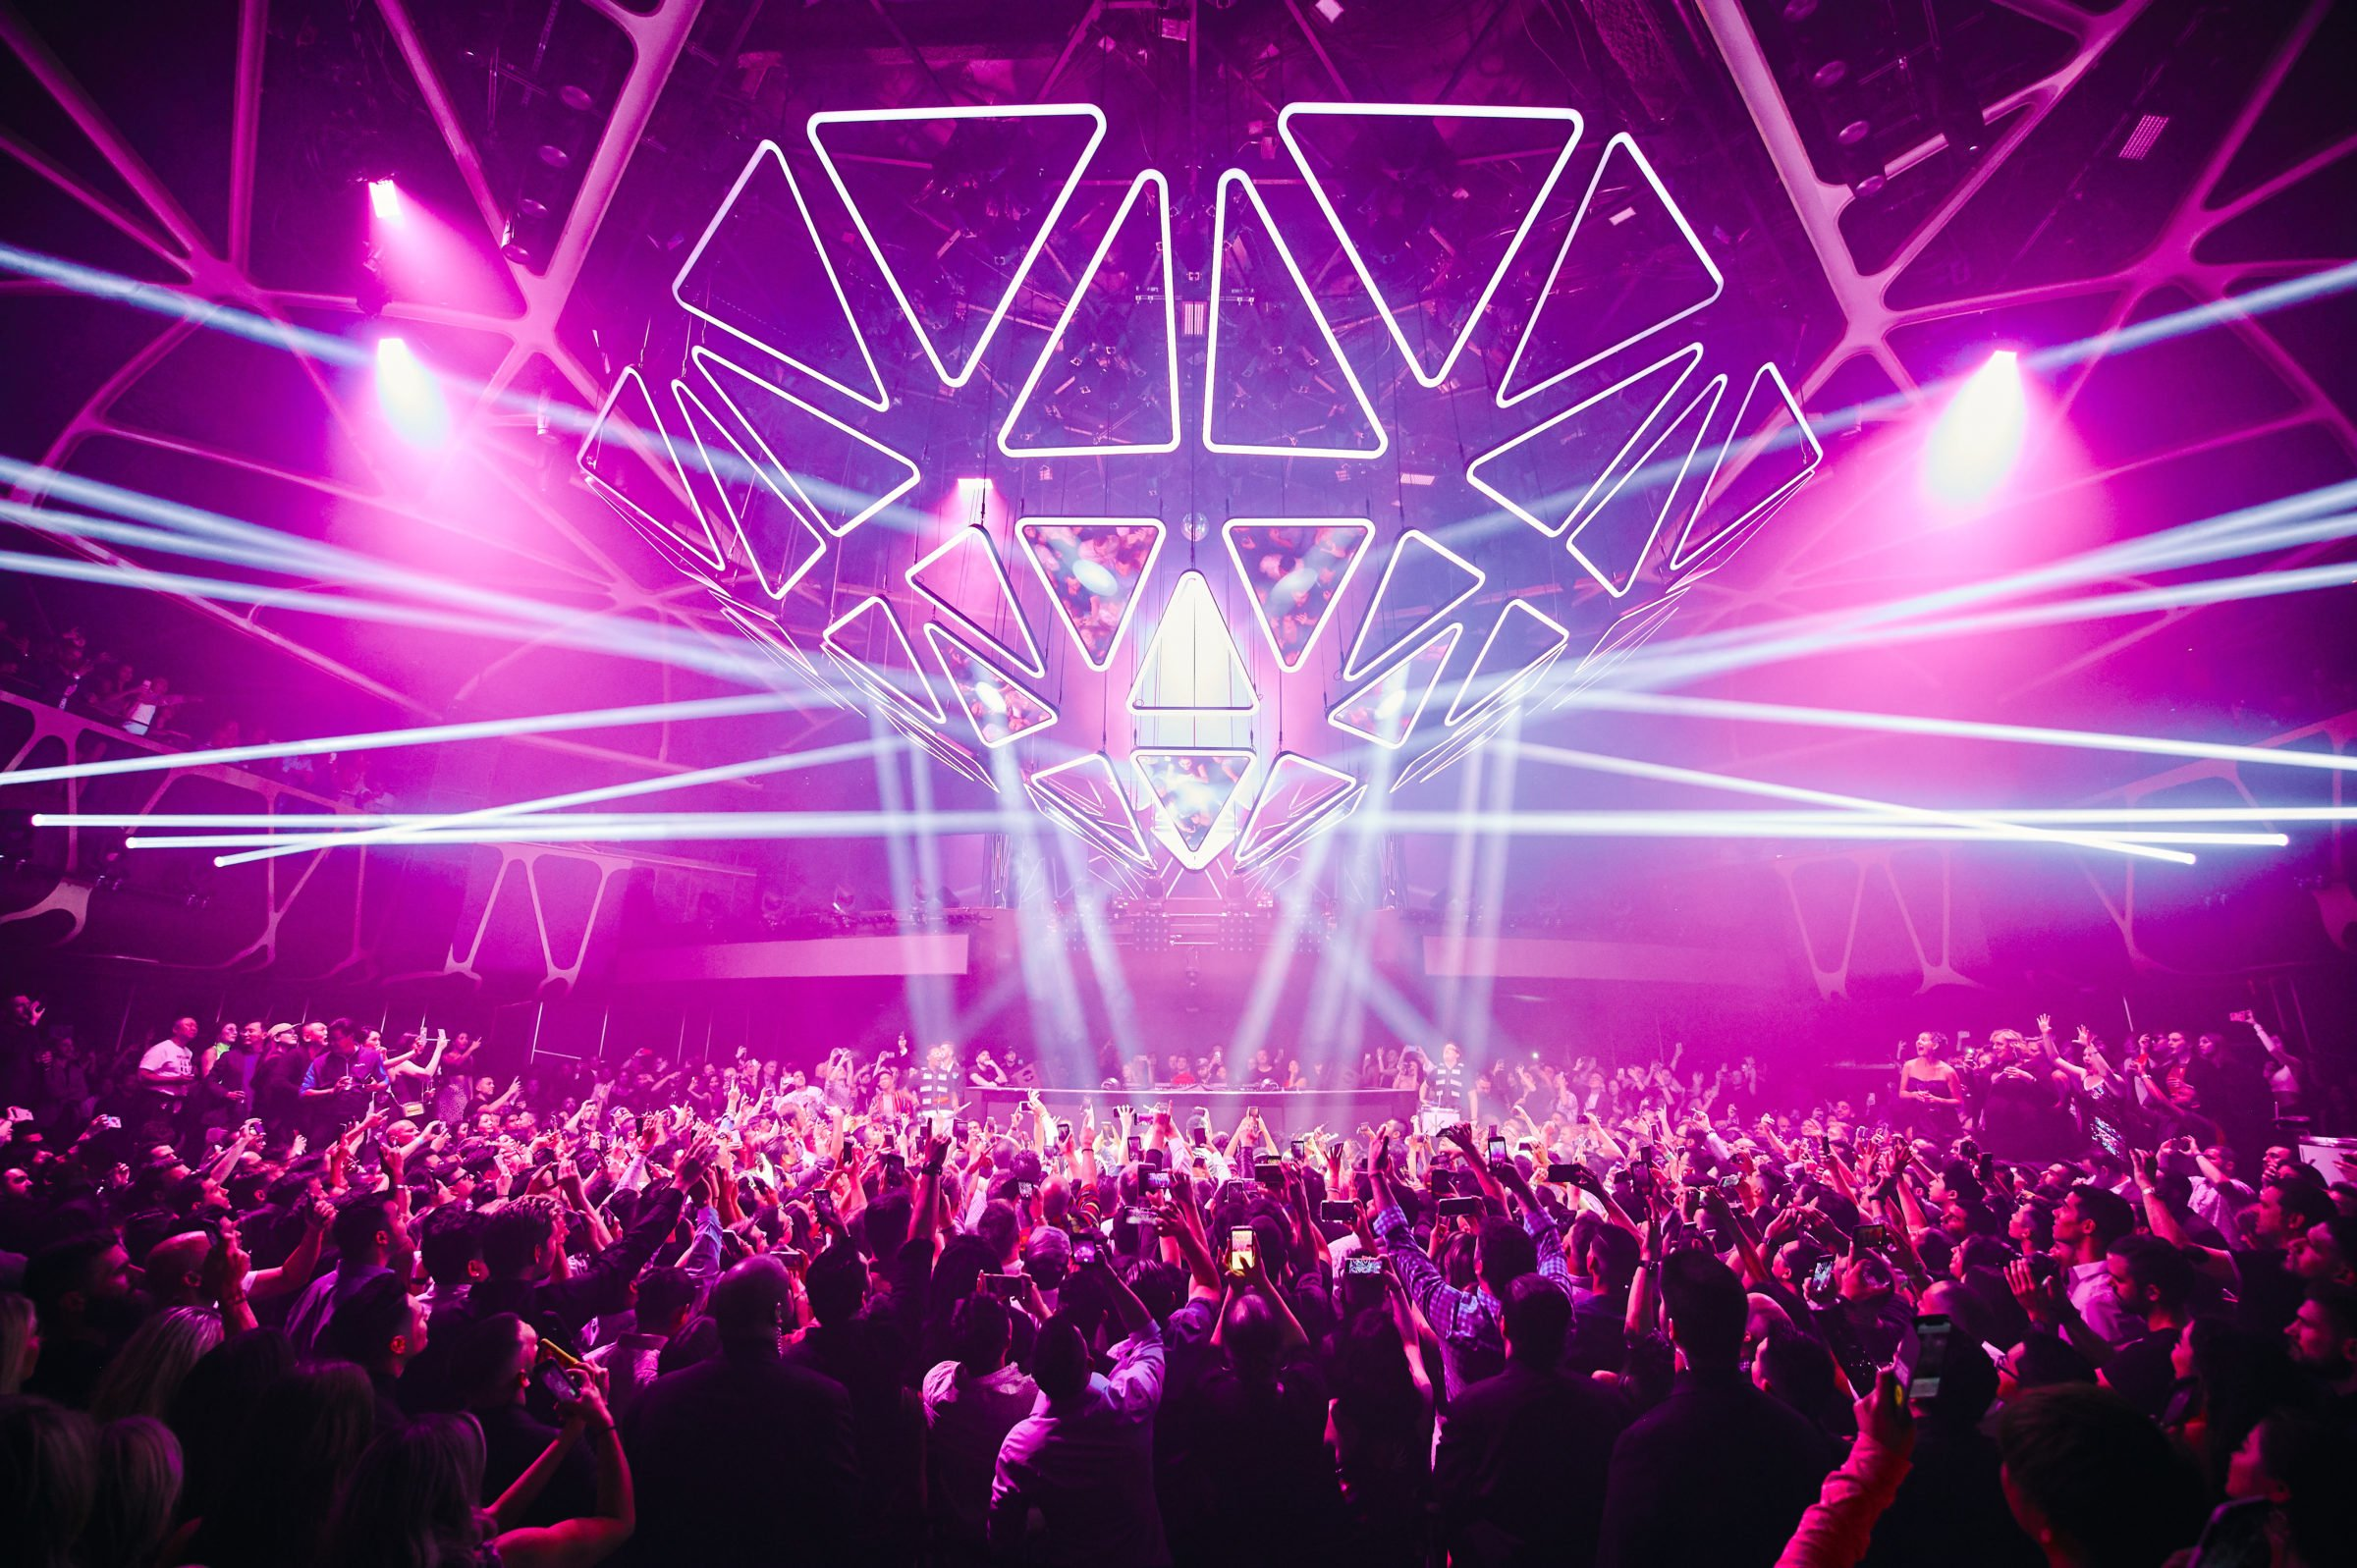 Hakkasan Group Celebrates The End Of The Decade With Unprecedented New Year's Eve Events